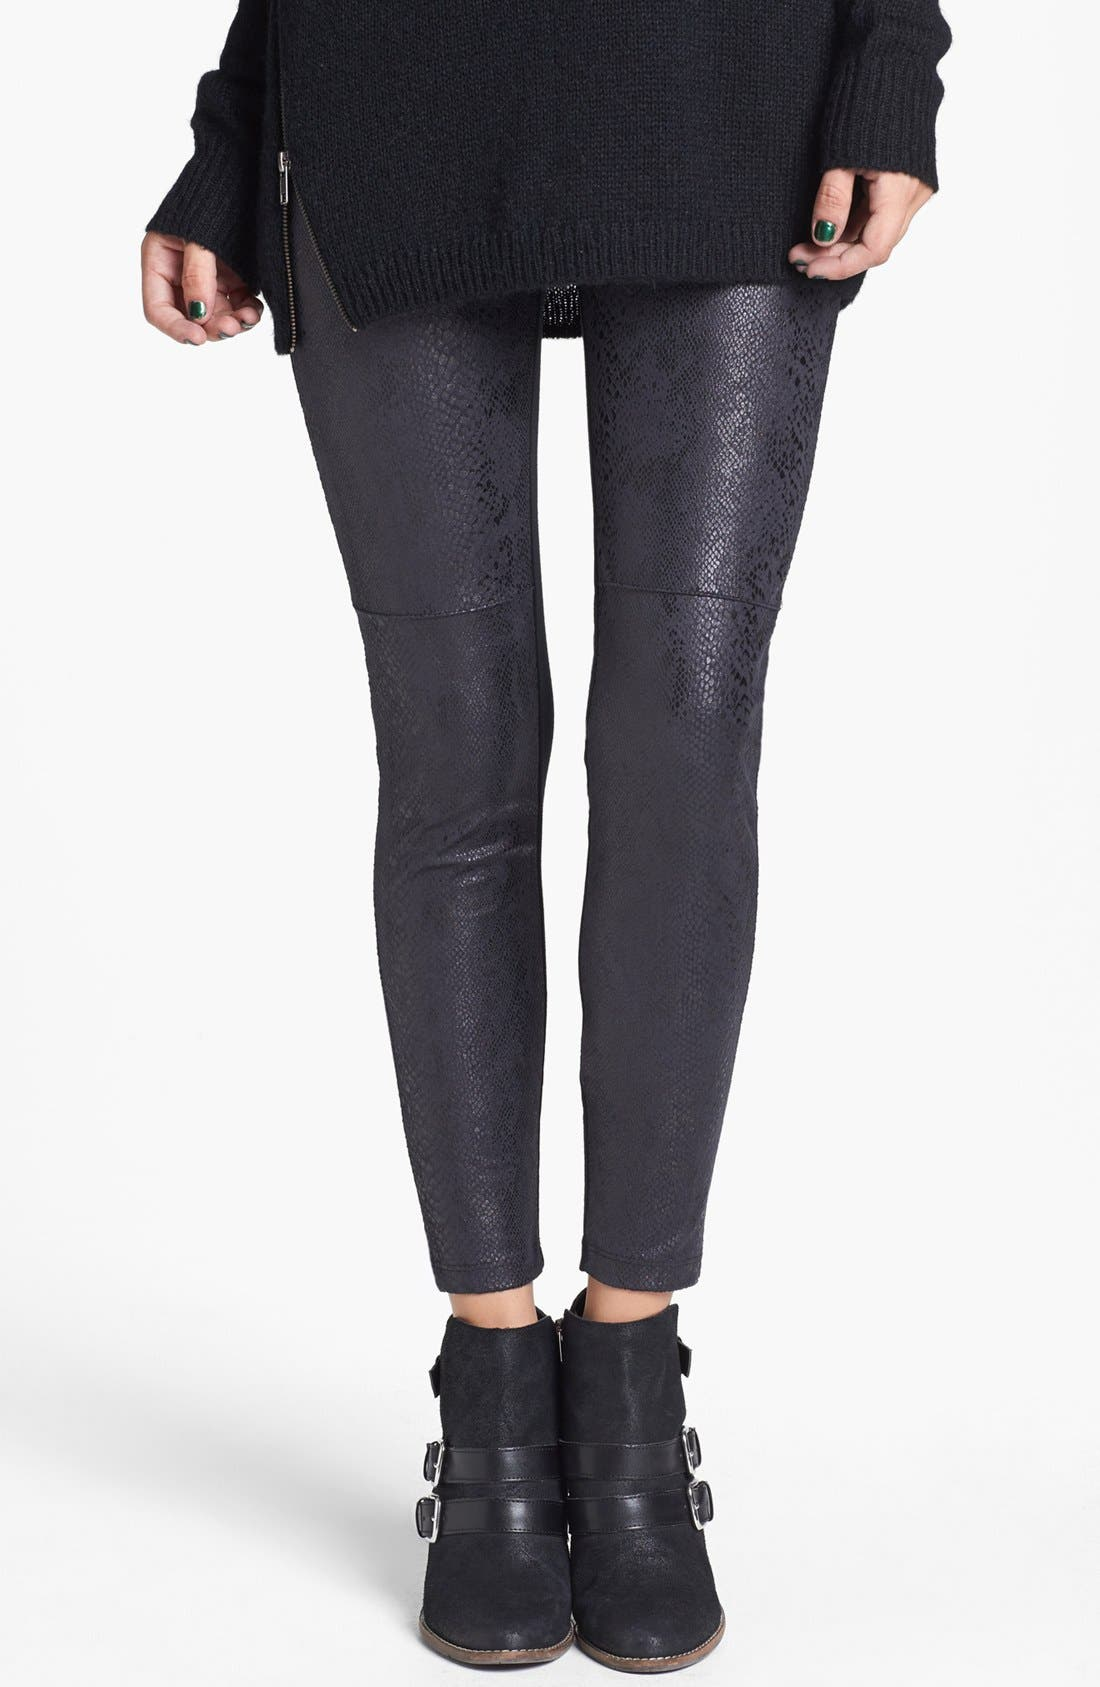 Alternate Image 1 Selected - Lily White Faux Leather Leggings (Juniors) (Online Only)